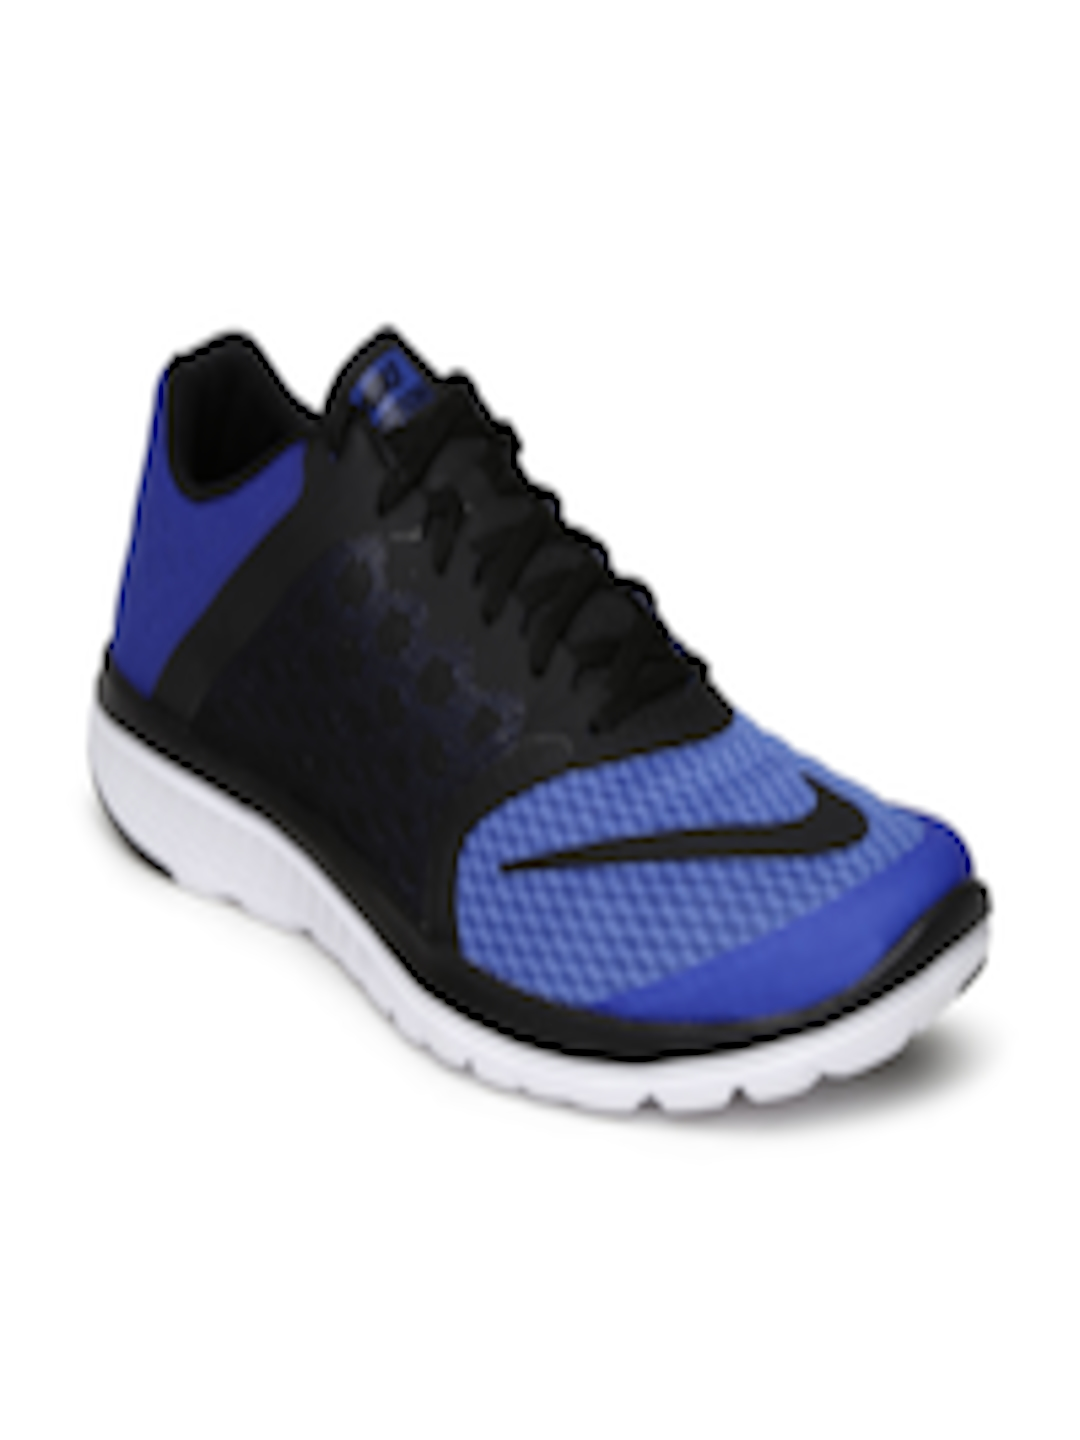 598d6c437cb Buy Nike Men Blue   Black FS Lite Run 3 Running Shoes - Sports Shoes for Men  1109945